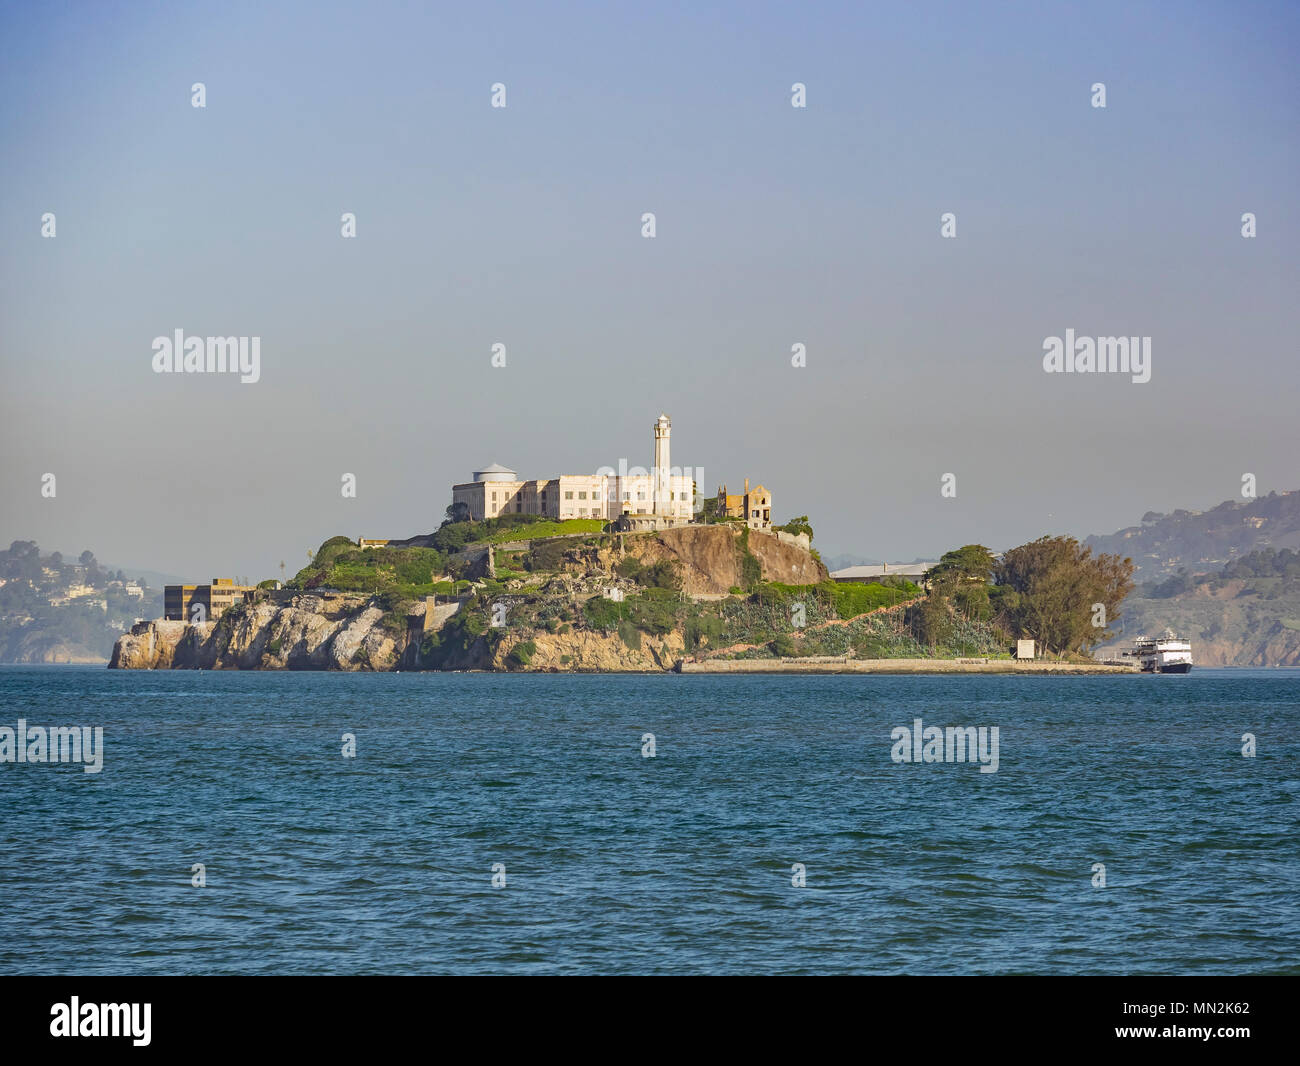 The famous and beautiful Alcatraz Island of San Francisco - Stock Image